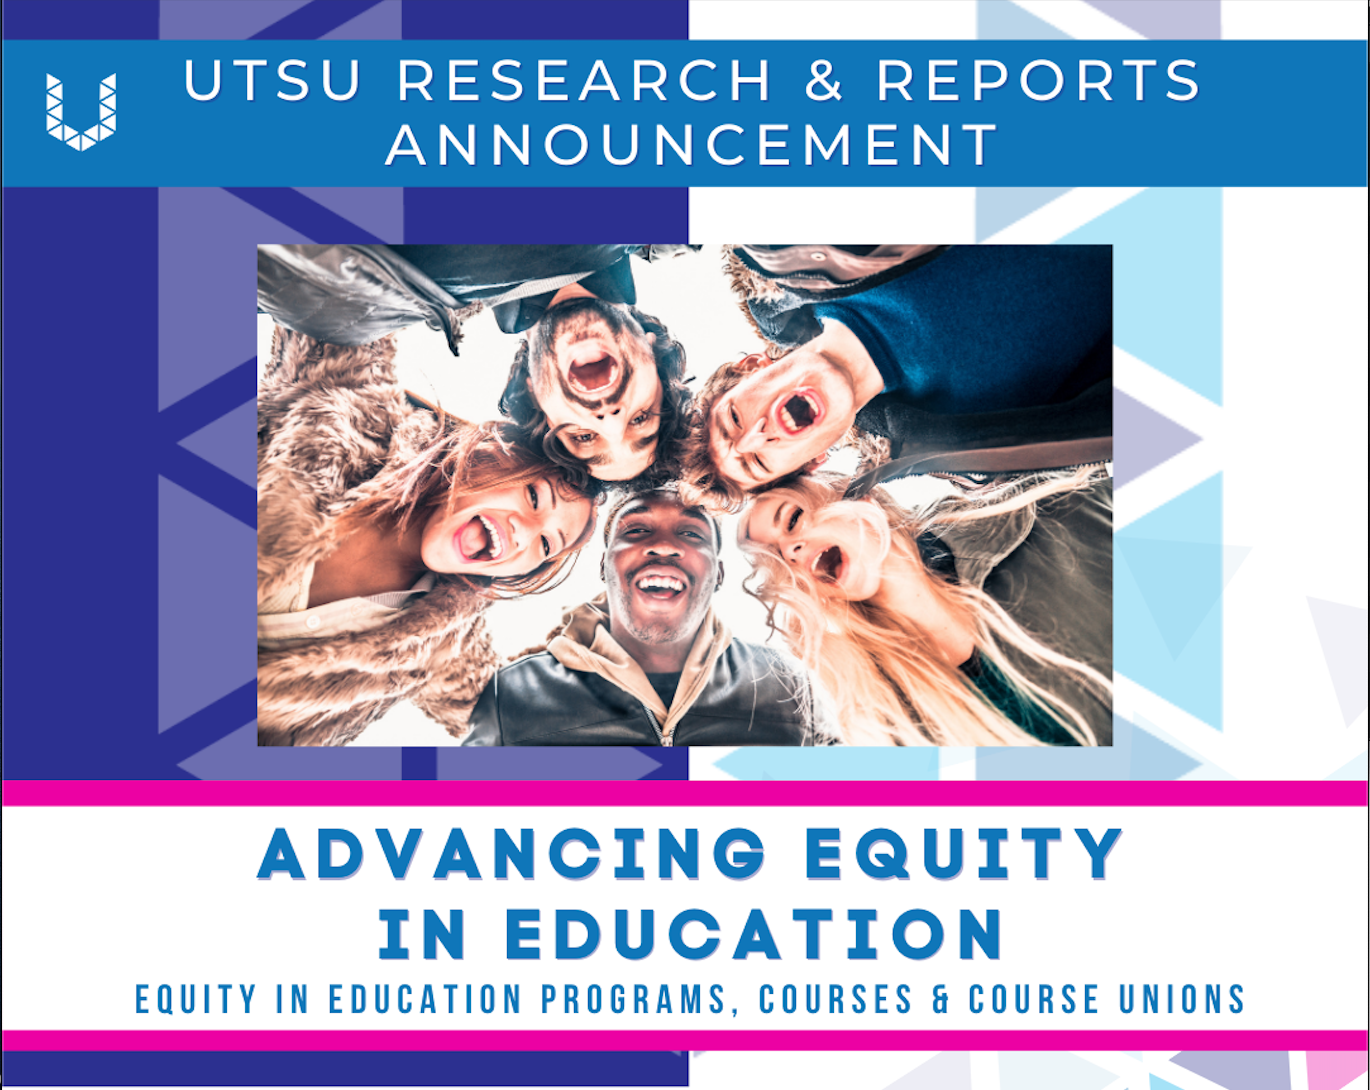 A flyer to promote the Advancing Equity in Education report